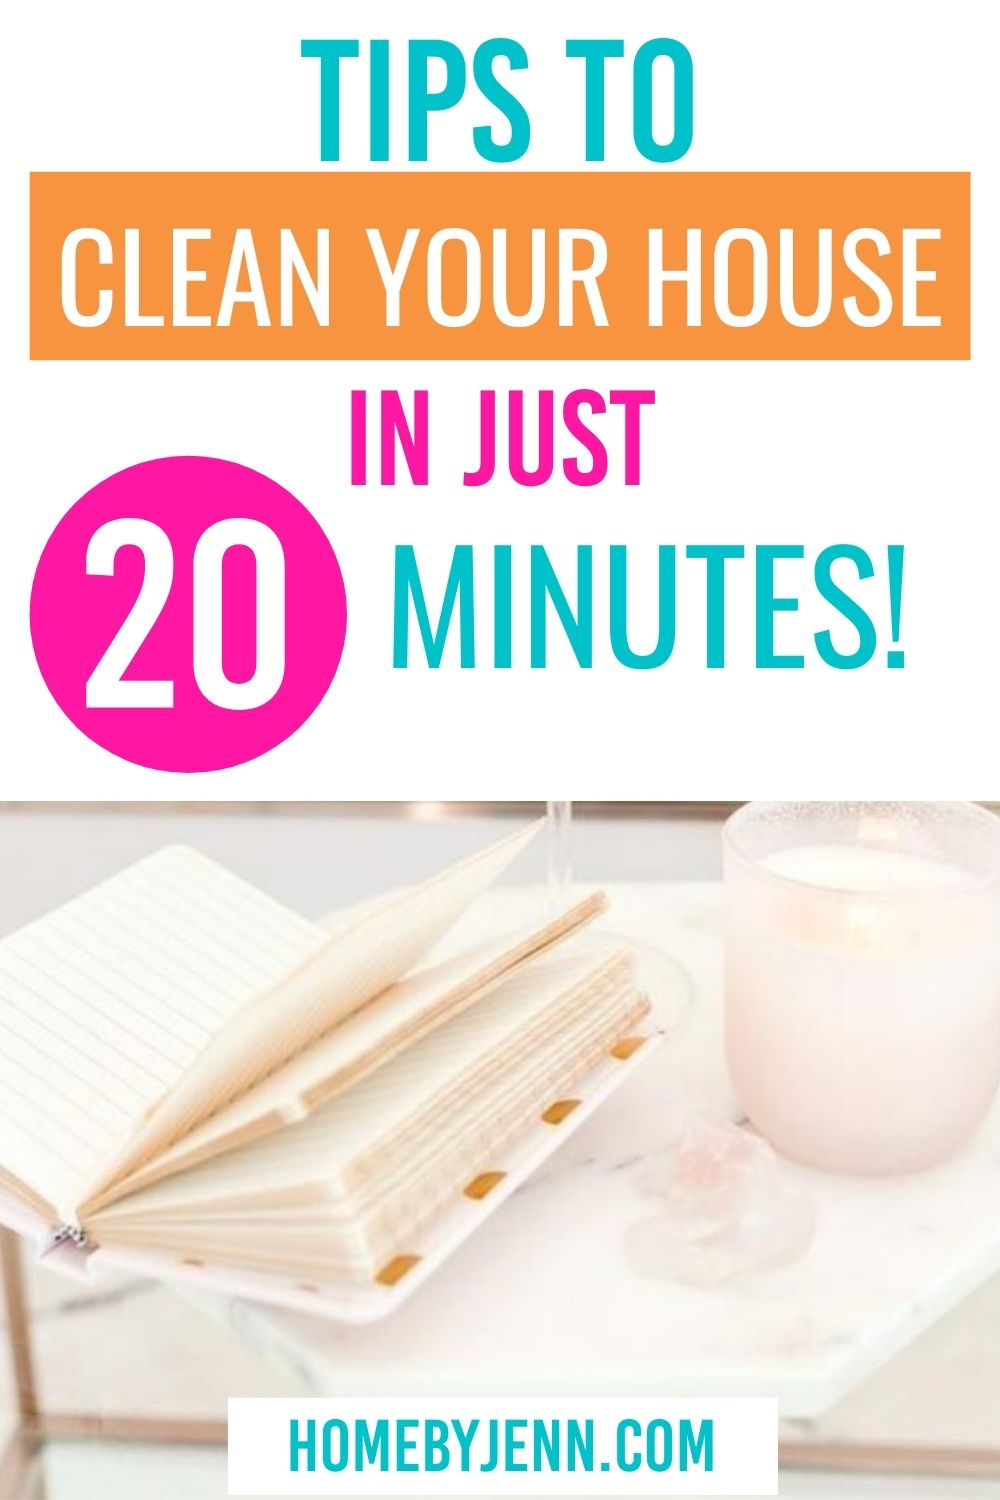 Enjoying a clean home is possible with these clean home tips. Follow along with these cleaning tips to achieve a clean home in under 20 minutes. #cleanhome #clean #cleaningtips #quickclean via @homebyjenn